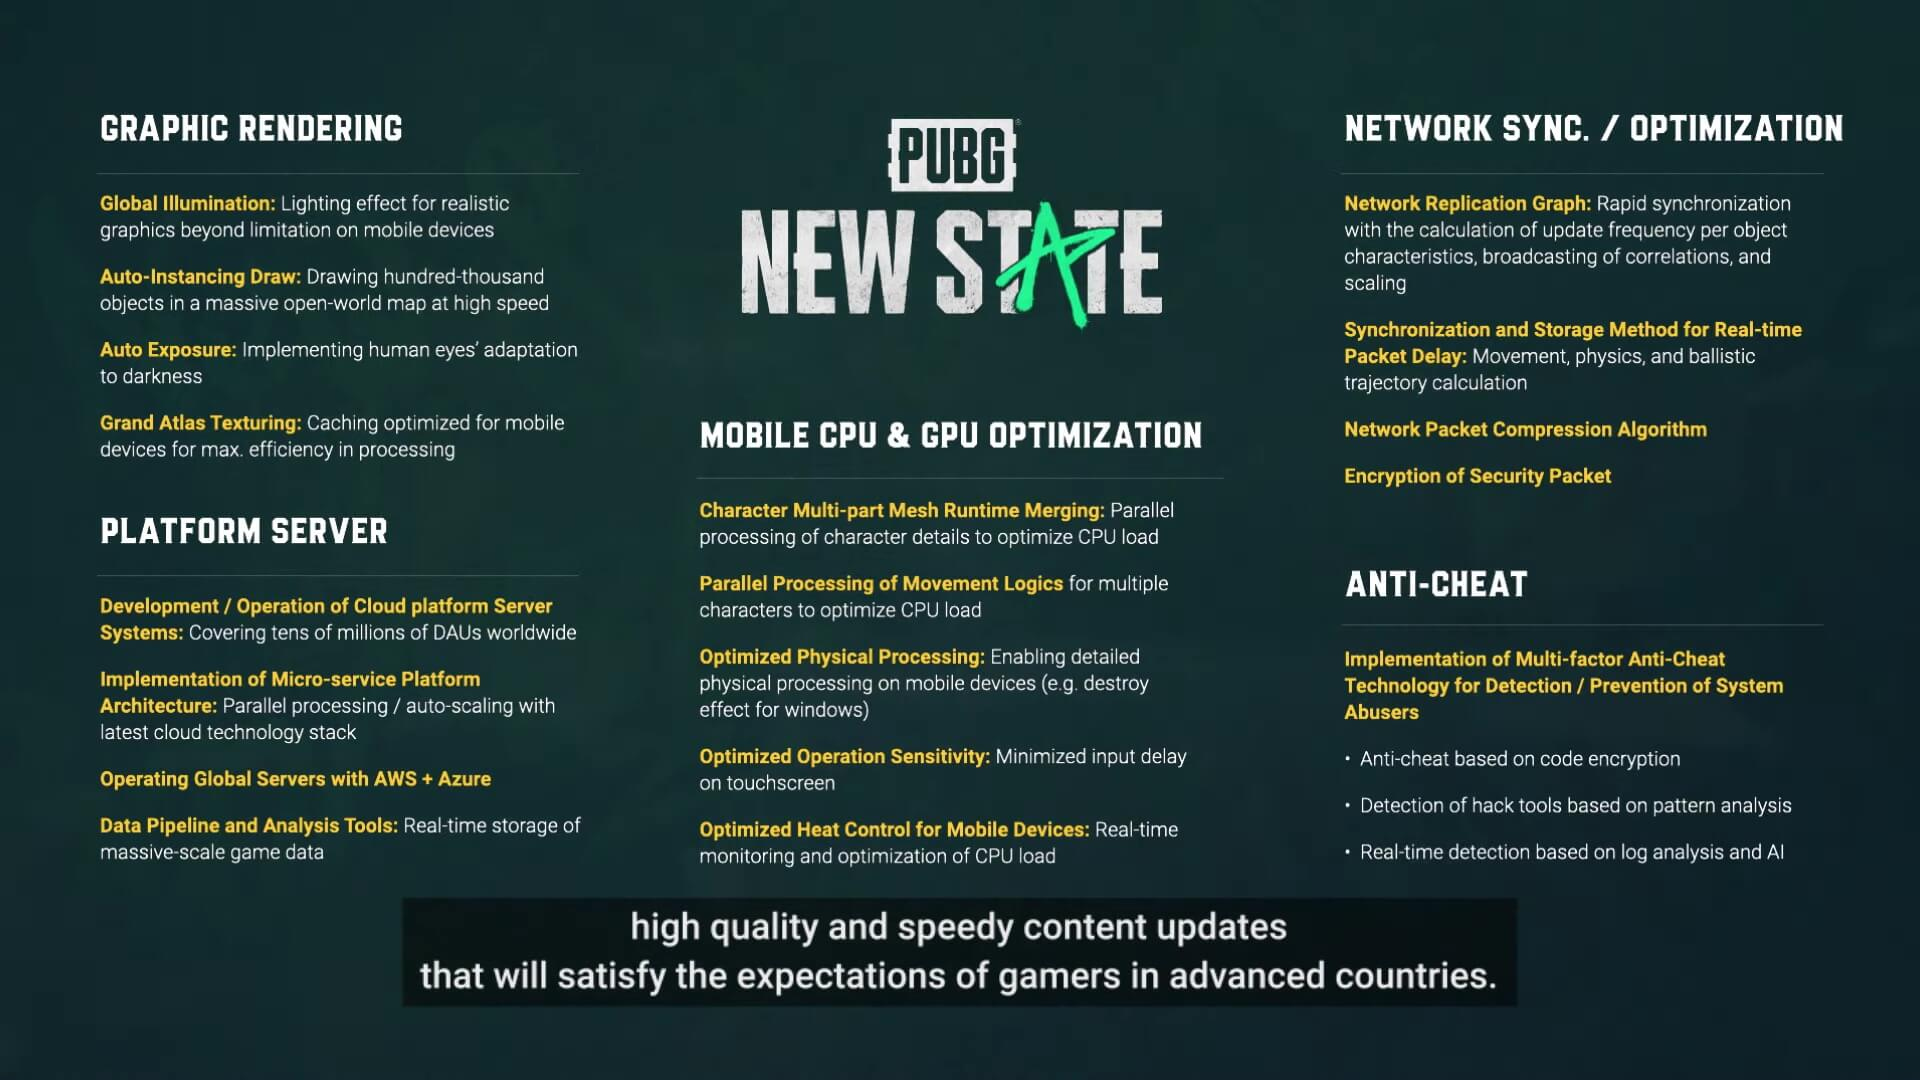 Pubg New State Technical Features